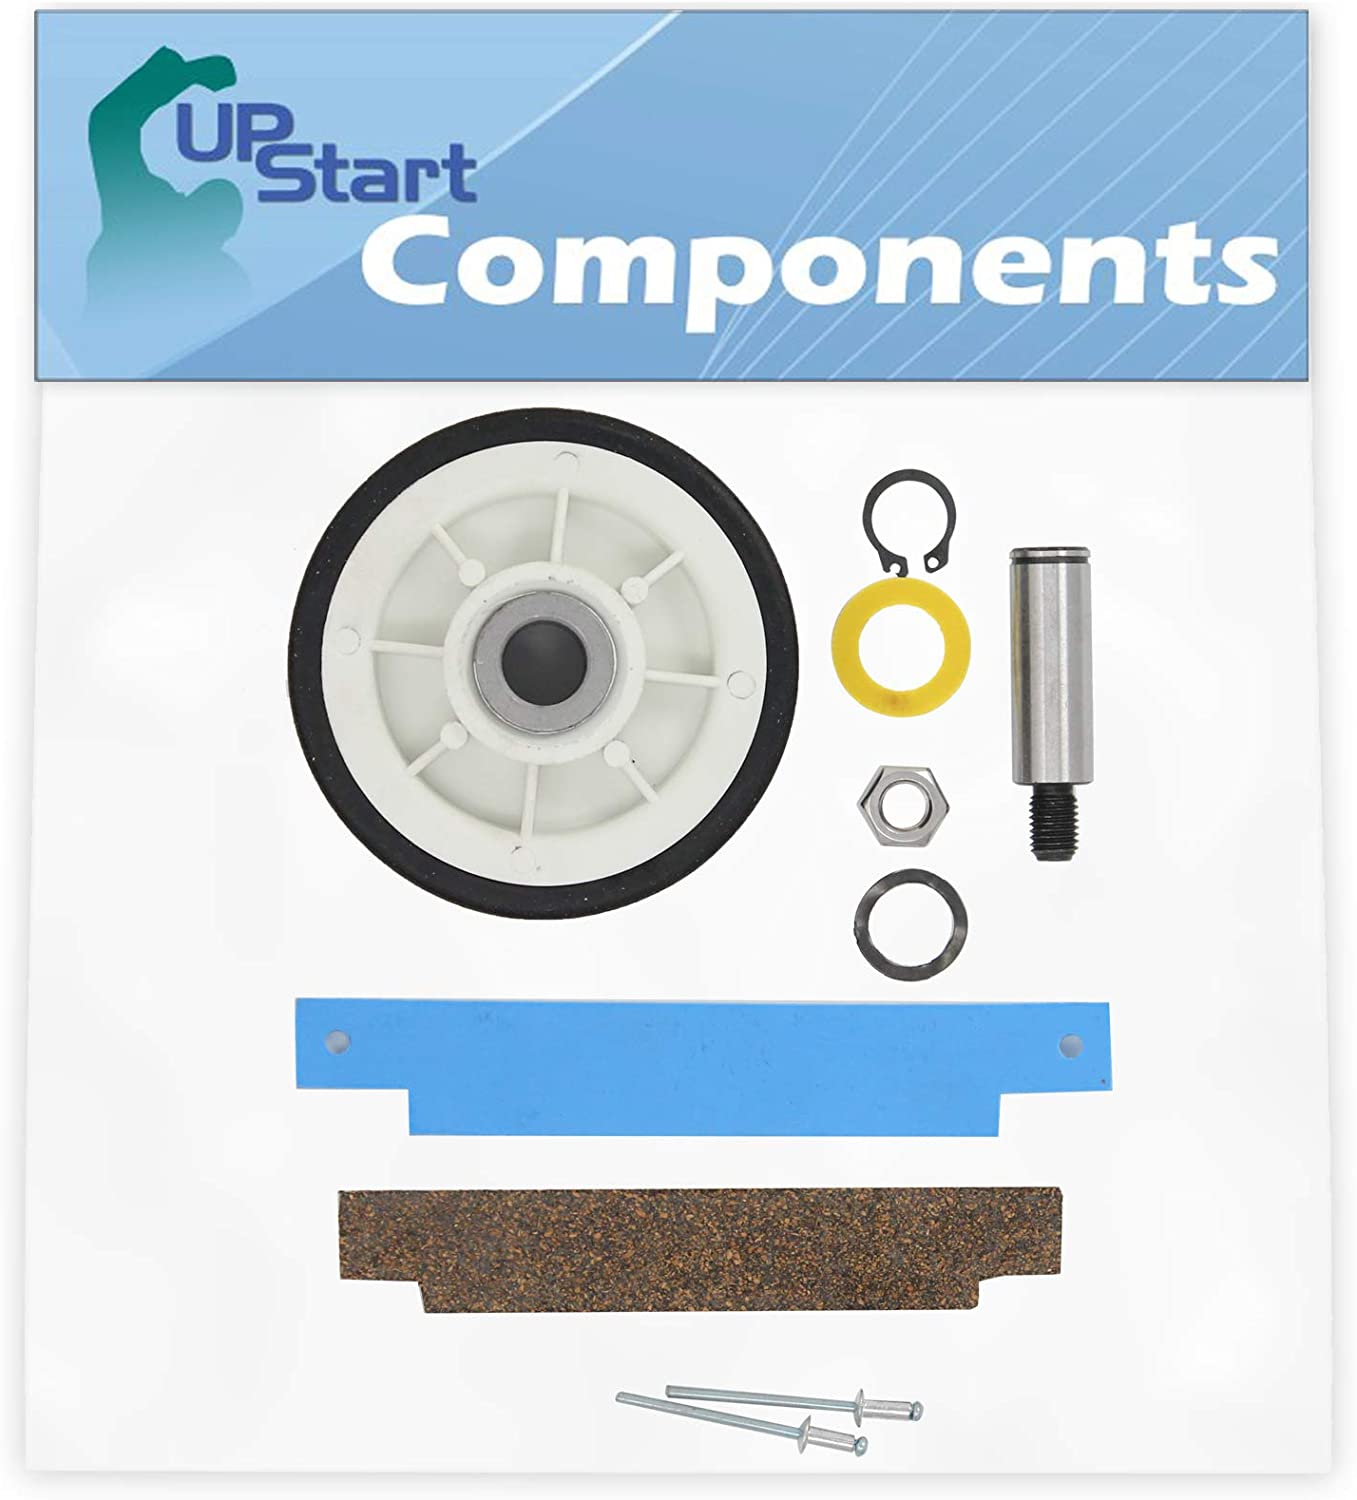 12001541 Drum Support Roller Kit & 306508 Bearing Kit Replacement for Maytag MDE4000AYQ Dryer - Compatible with 303373 Drum Roller Wheel & 306508 Tumbler Bearing Kit Front Glide Rivets and Pad